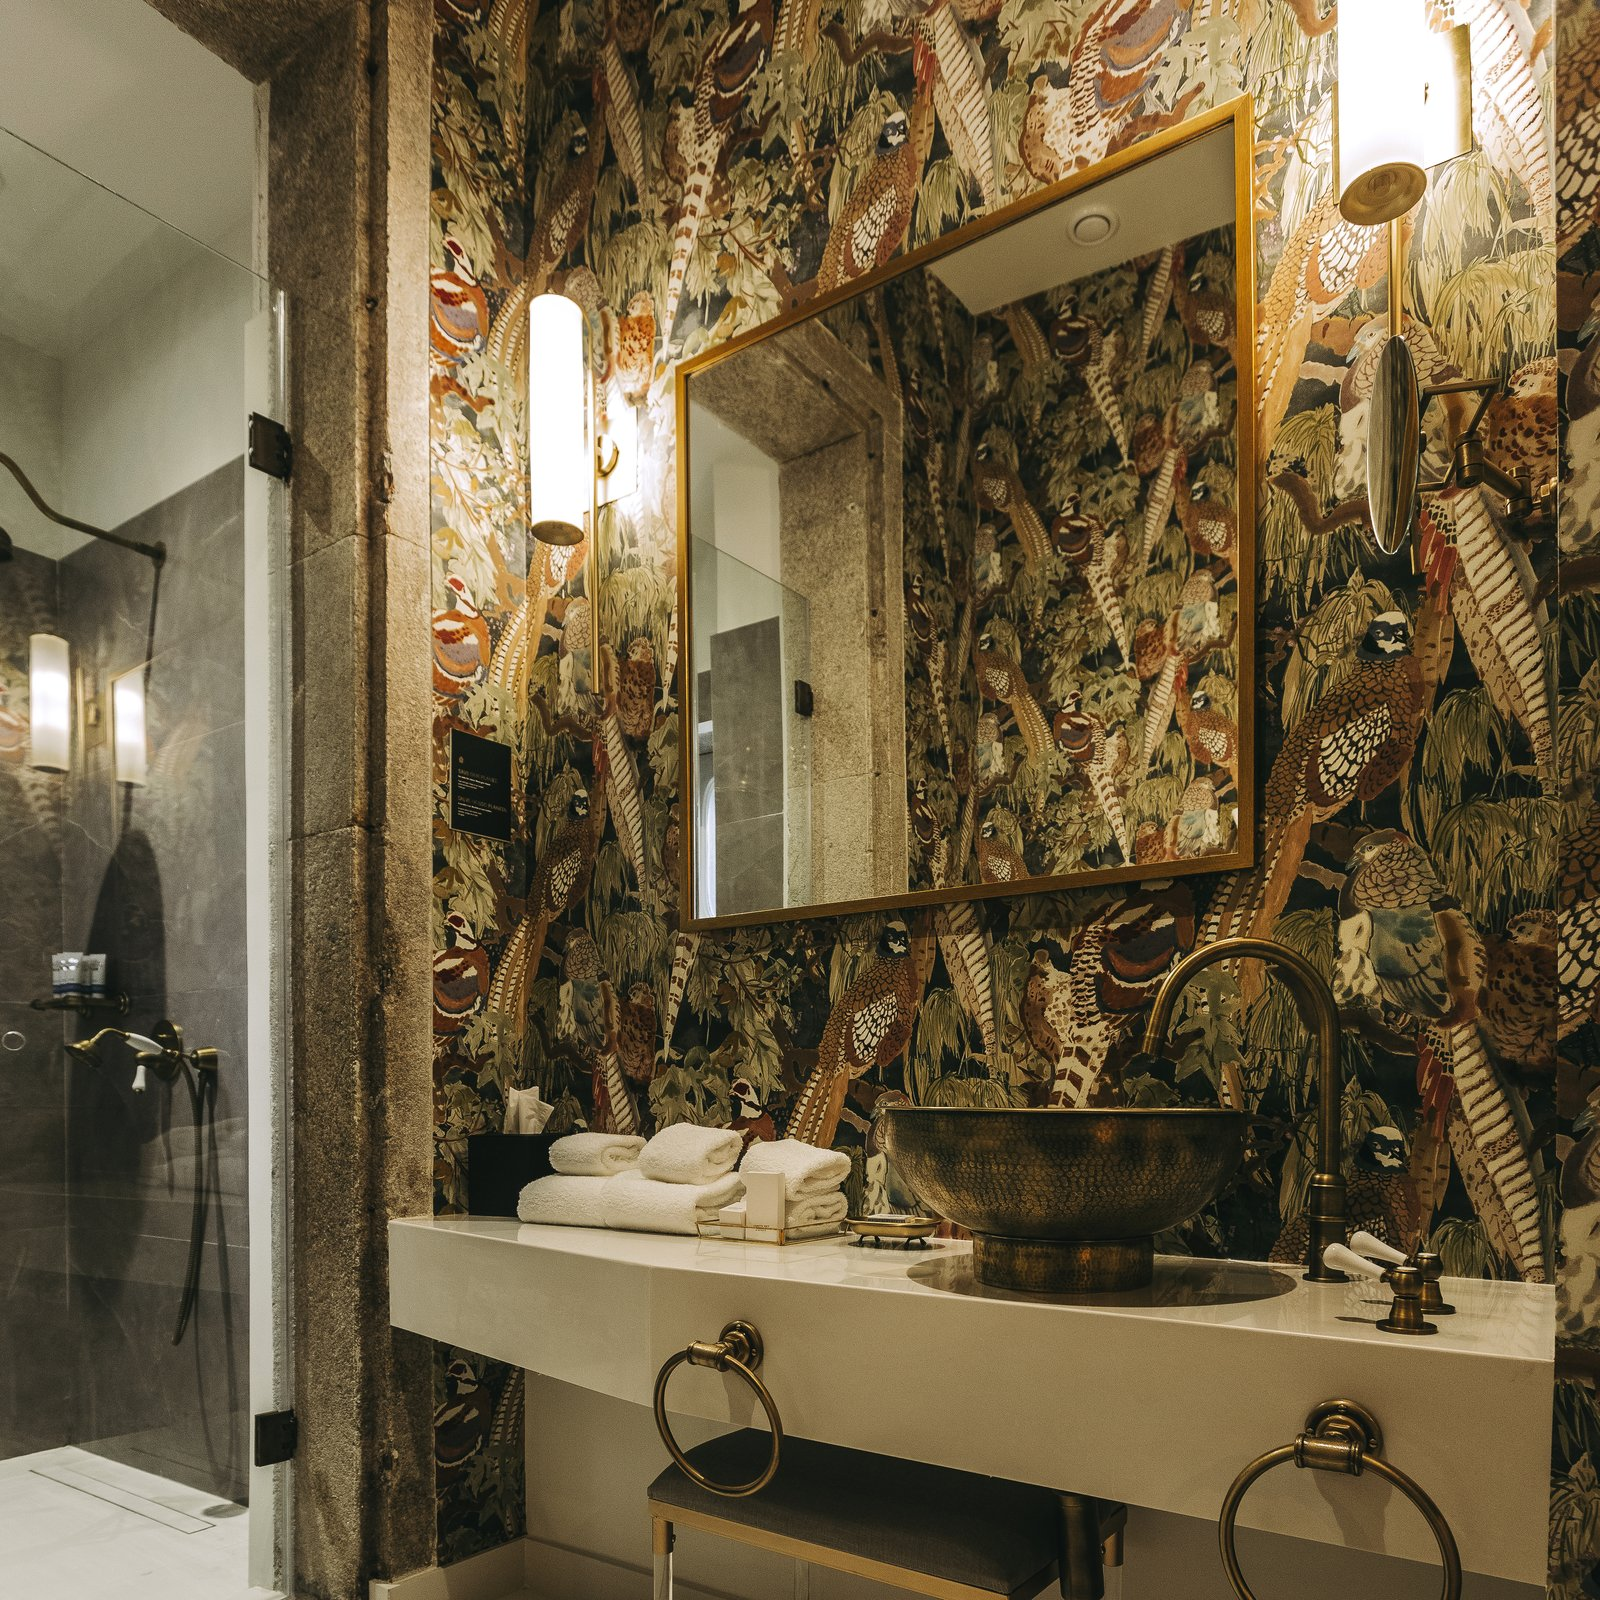 Torel 1884 Exotic Birds bathroom